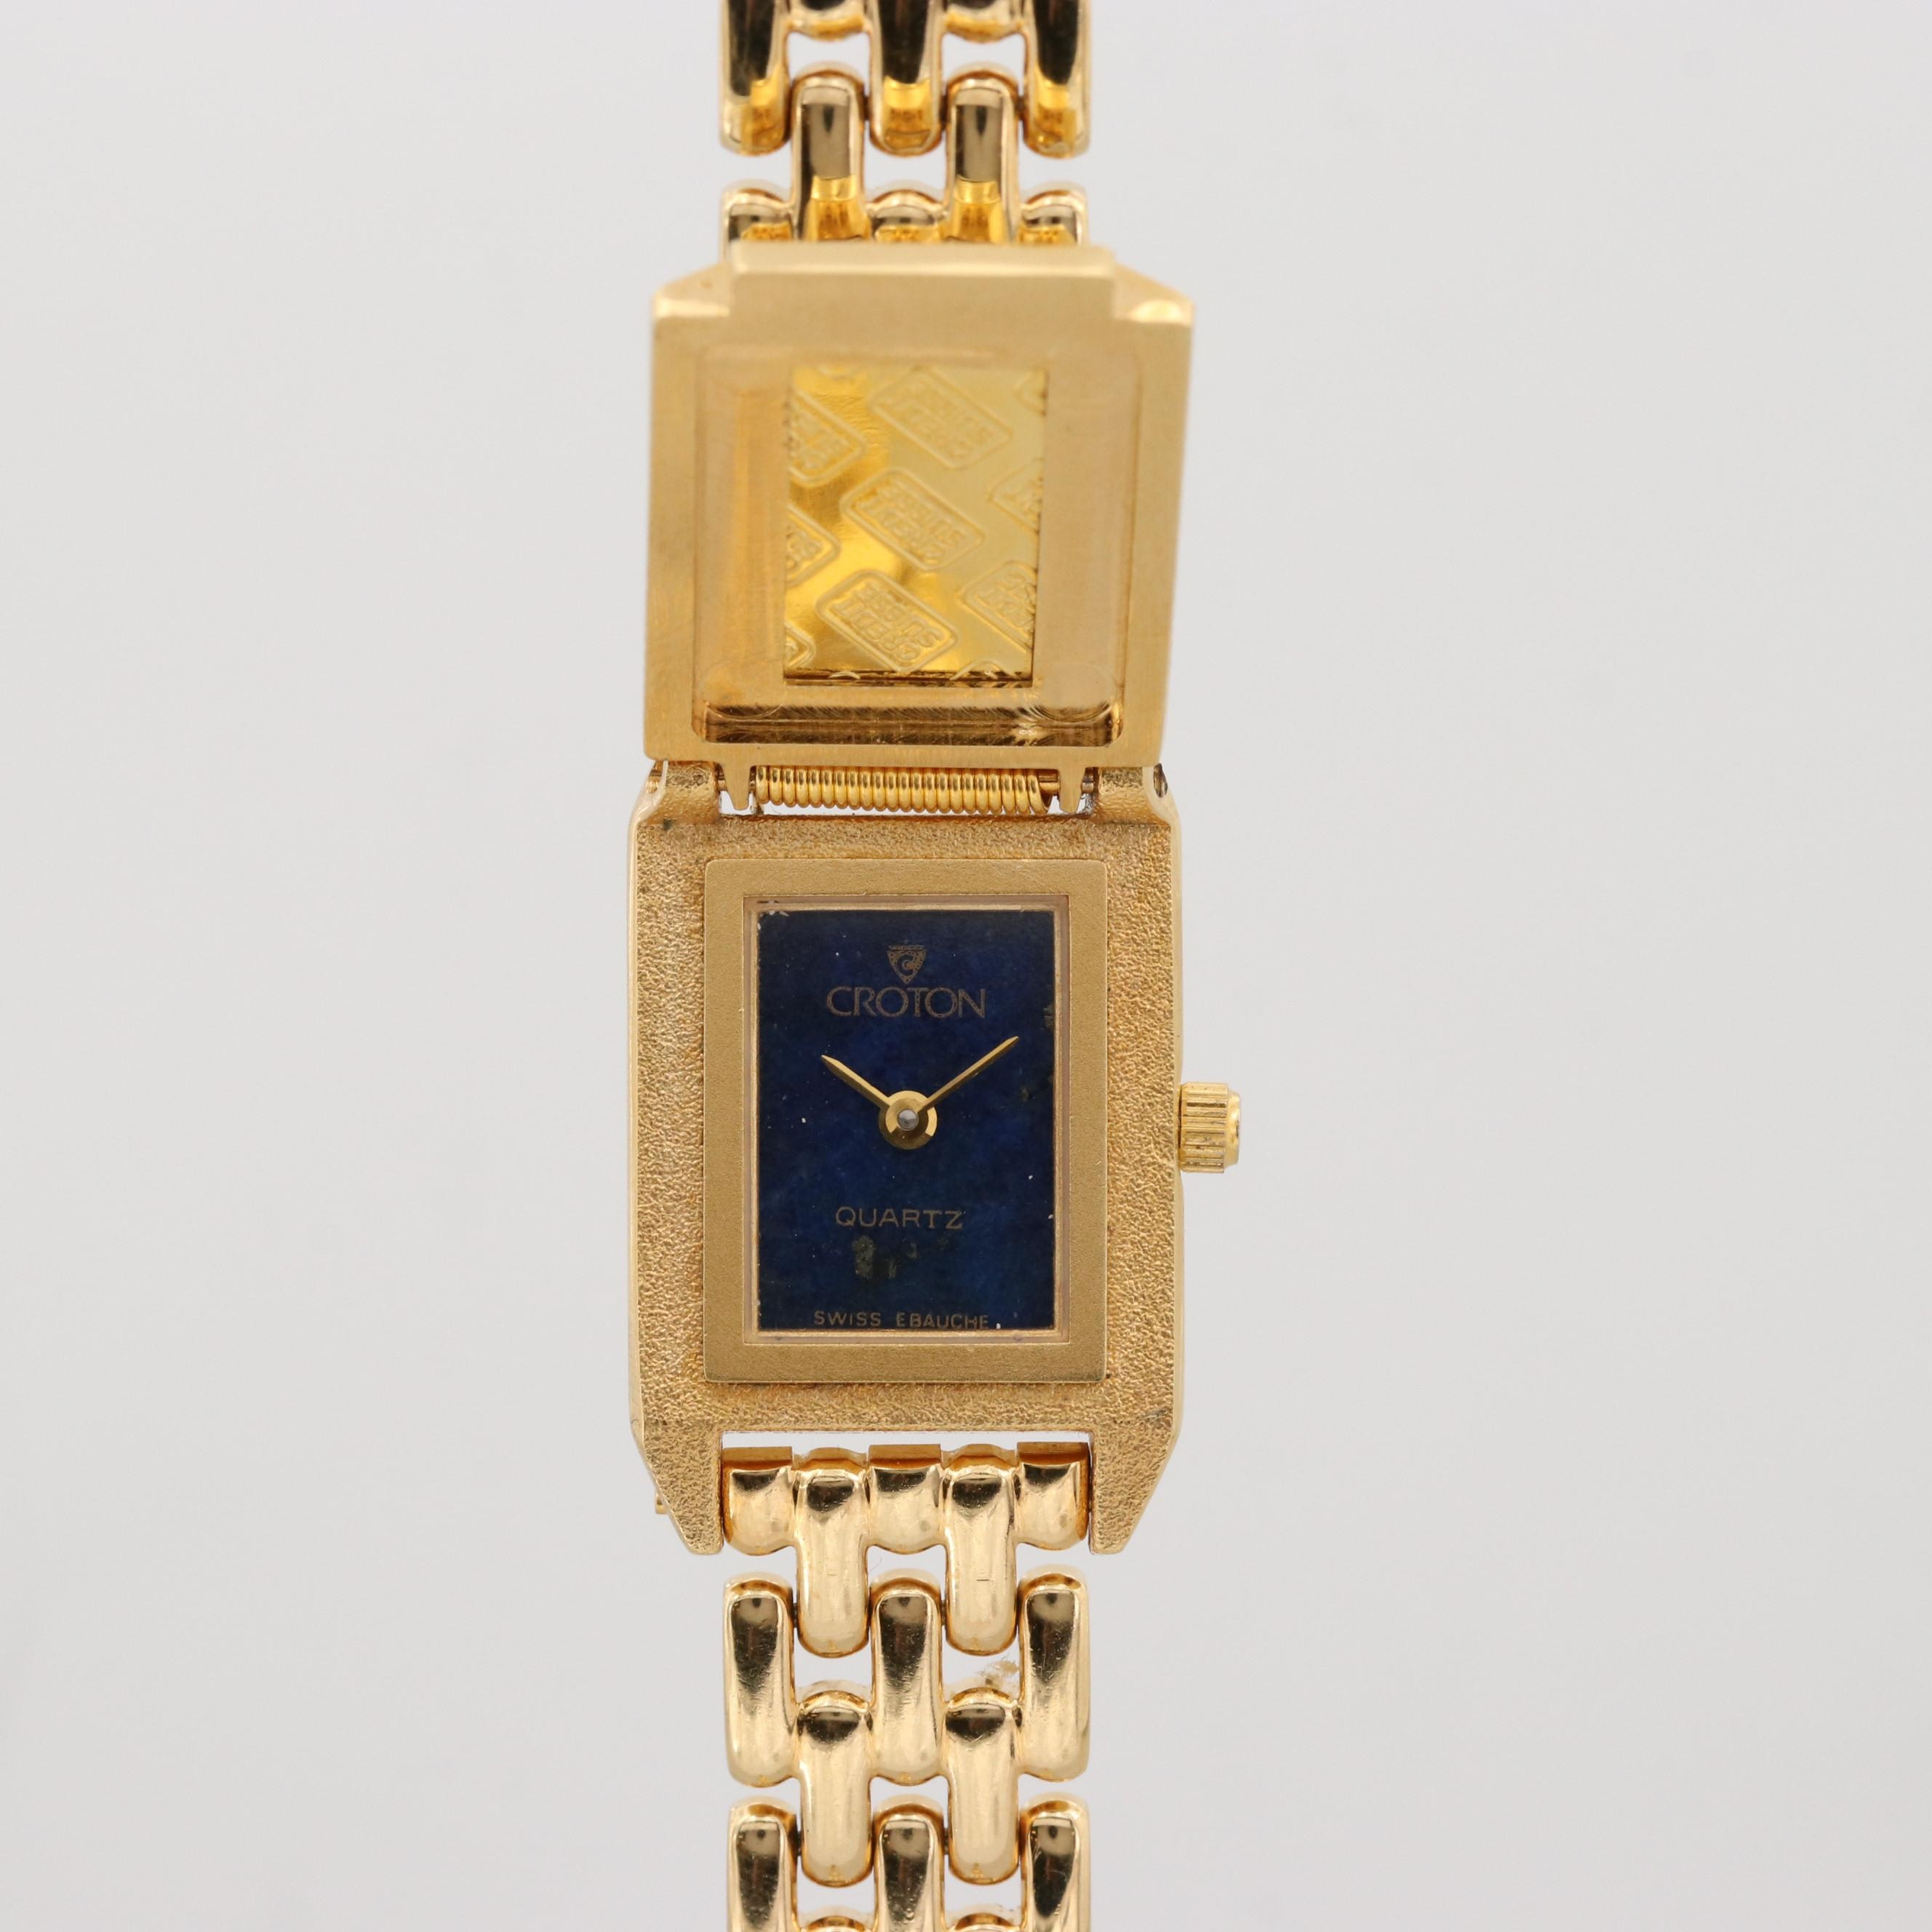 Croton Gold Ingot Hidden Dial Quartz Wristwatch with Lapis Lazuli Dial